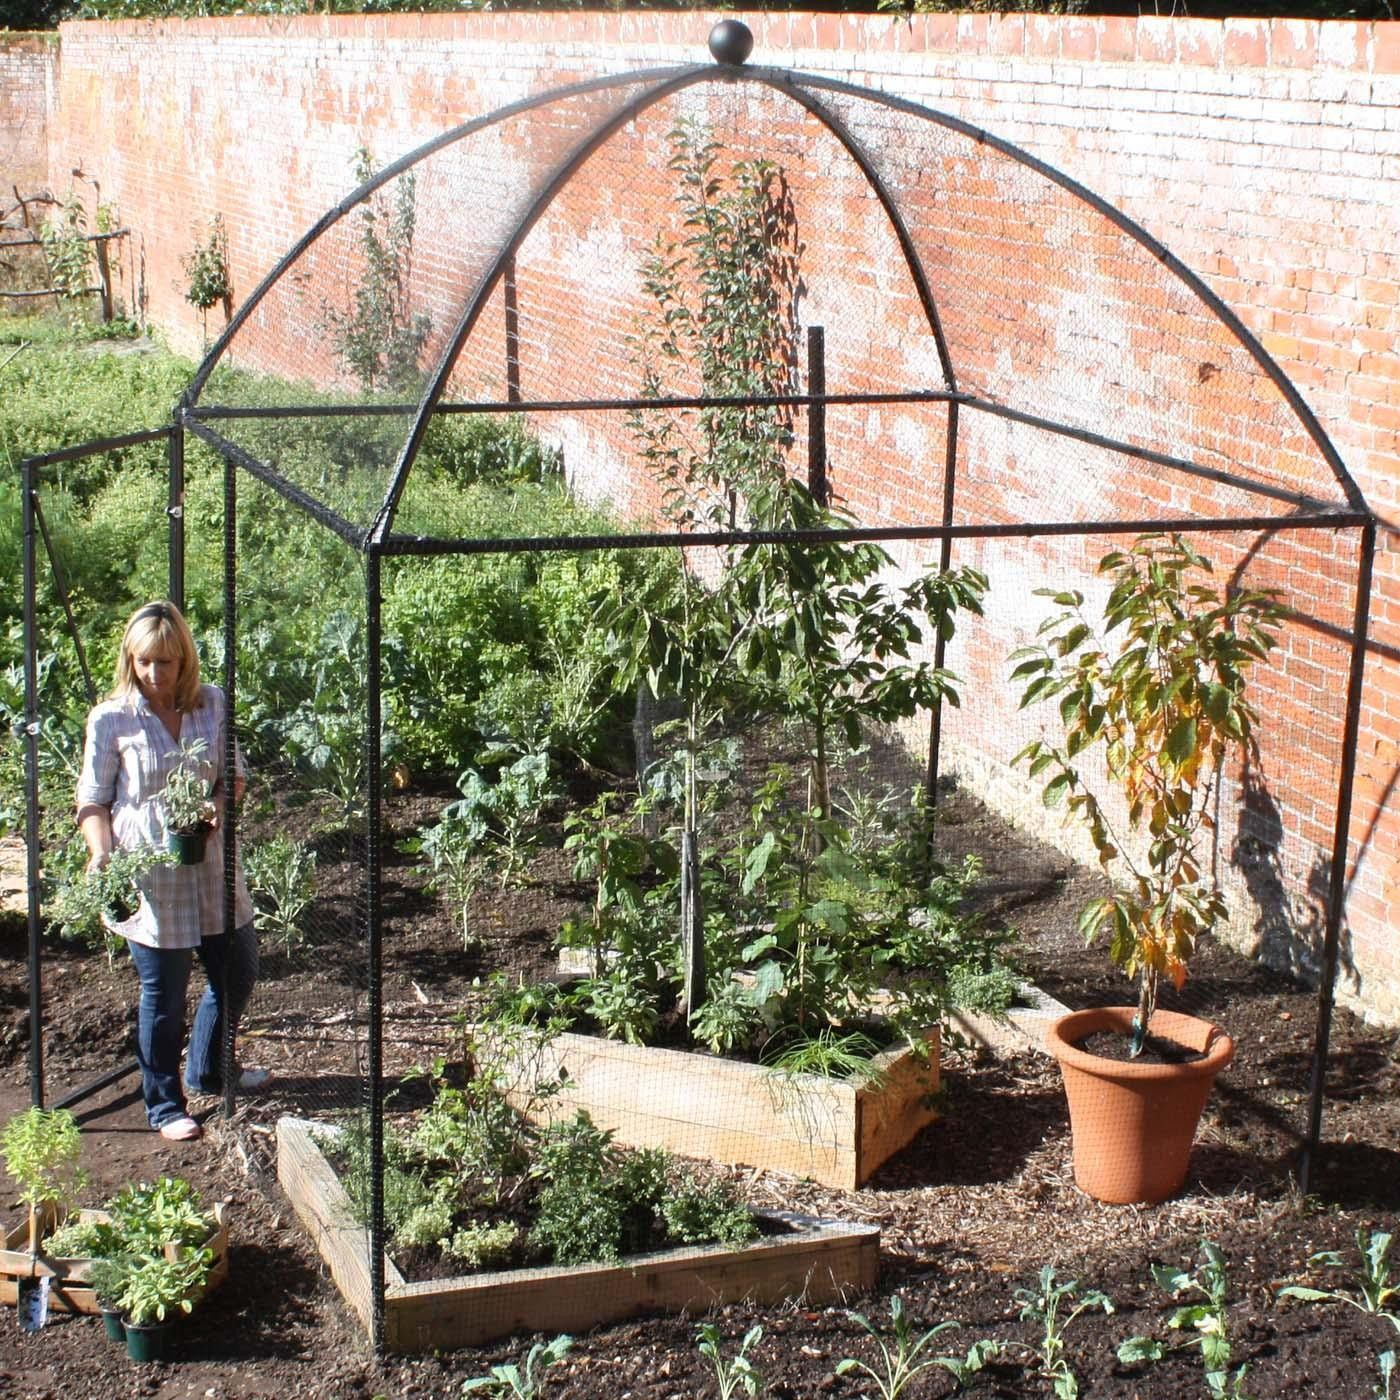 Dome Roof Heavy Duty Steel Decorative Fruit Cage | Steel, Gardens ...